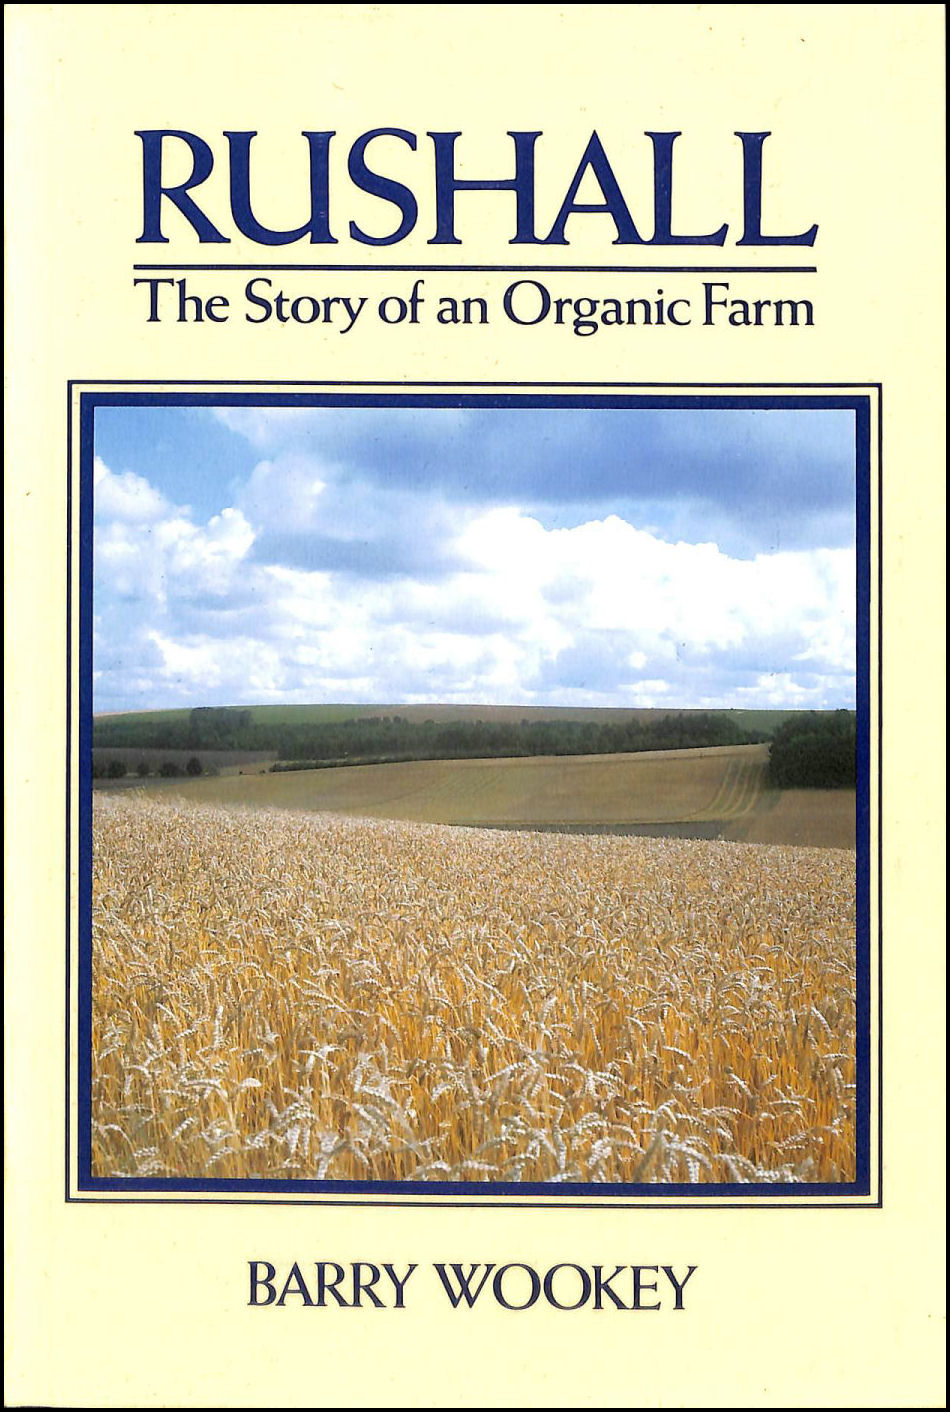 Rushall: Story of an Organic Farm, Barry Wookey